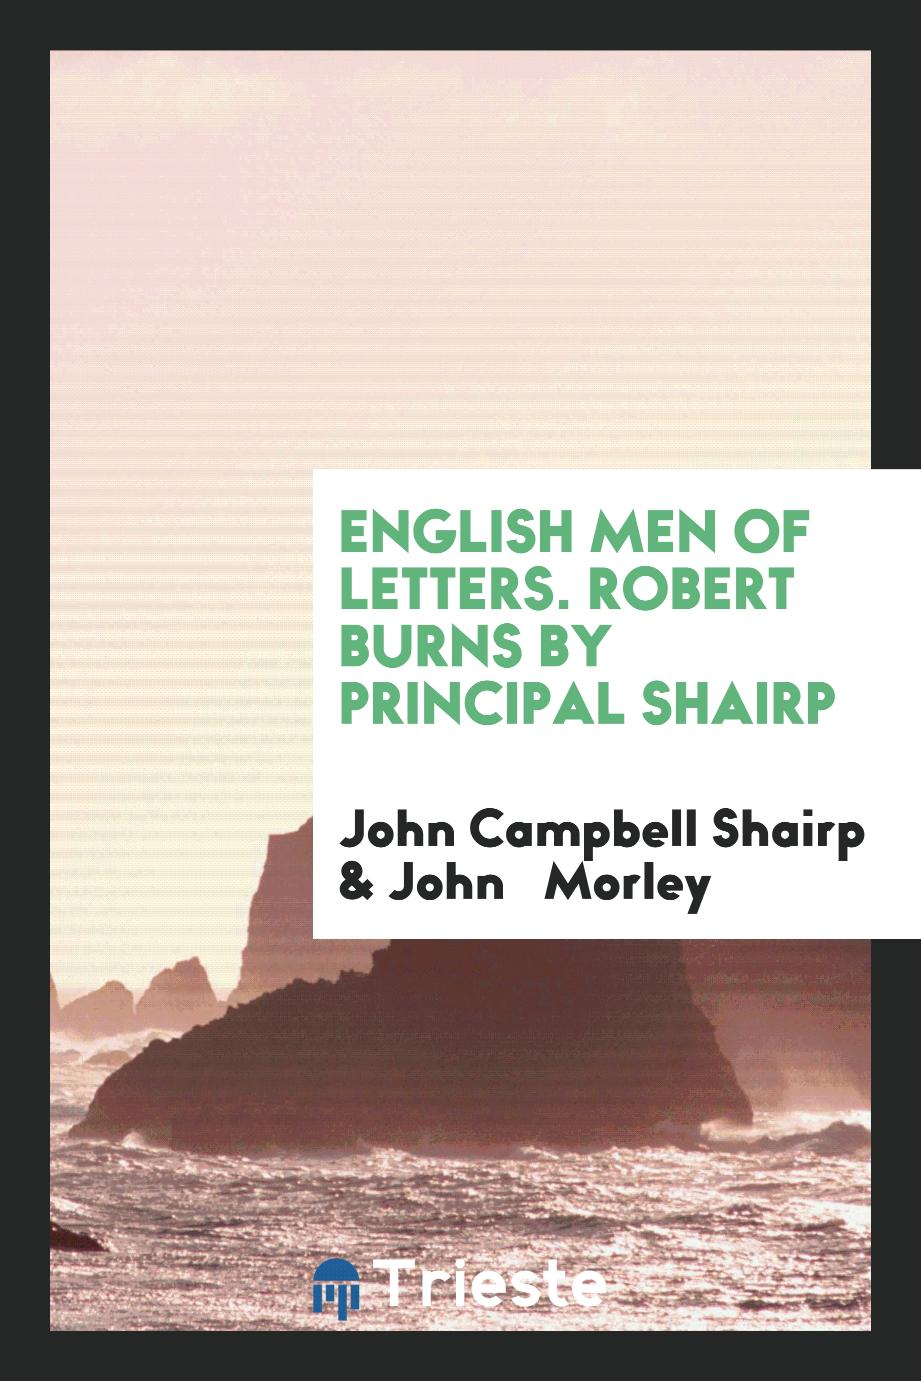 English Men of Letters. Robert Burns by Principal Shairp